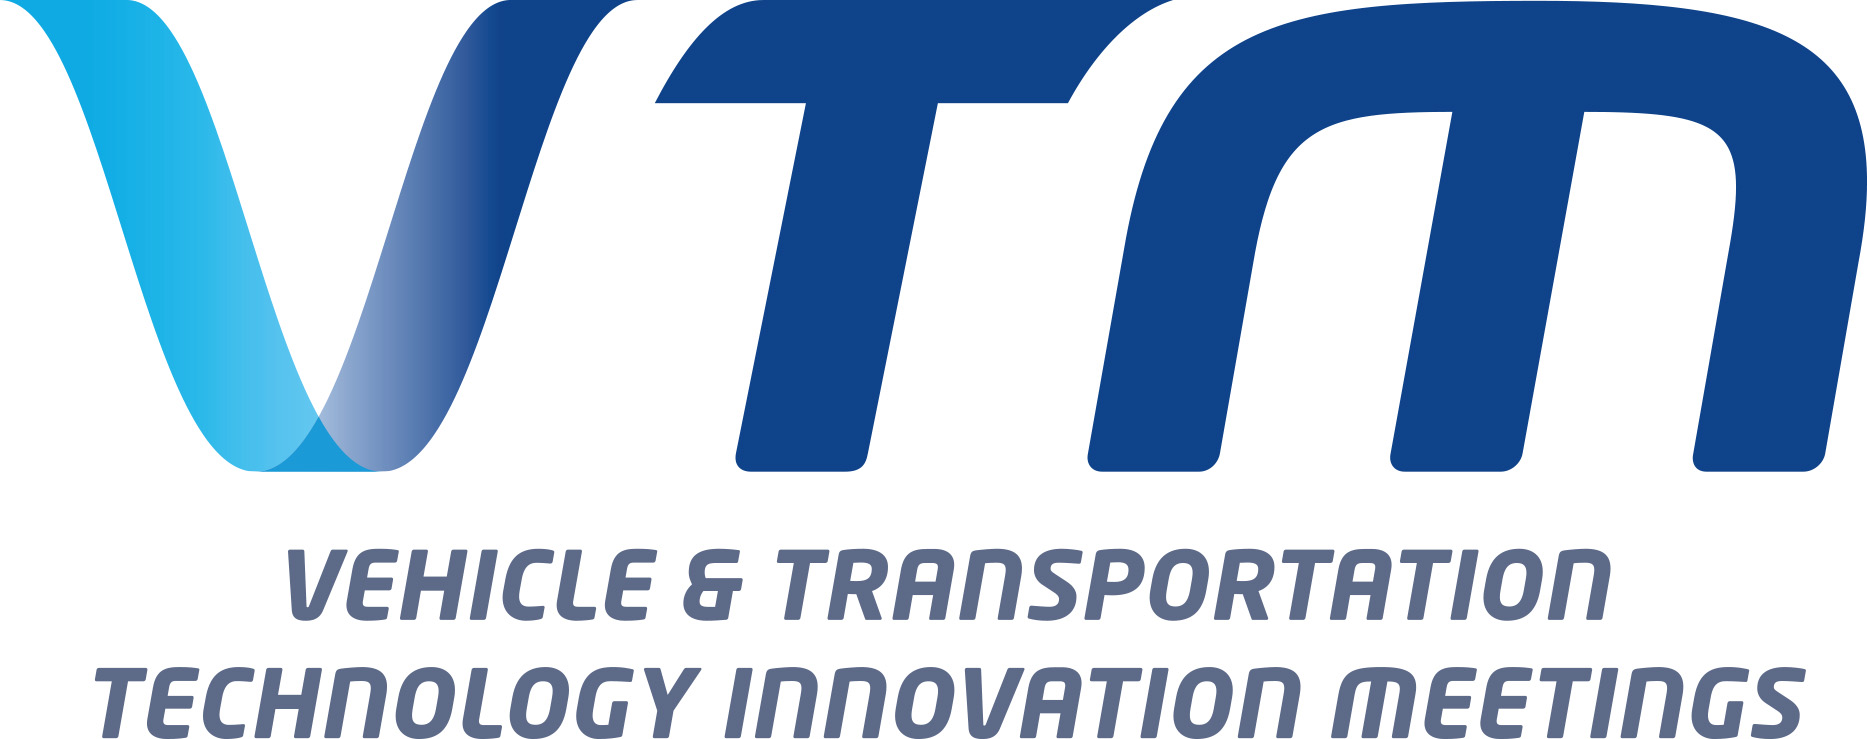 "Partnering Forum ""Vehicle & Transportation Technology Innovation"" in Turin"